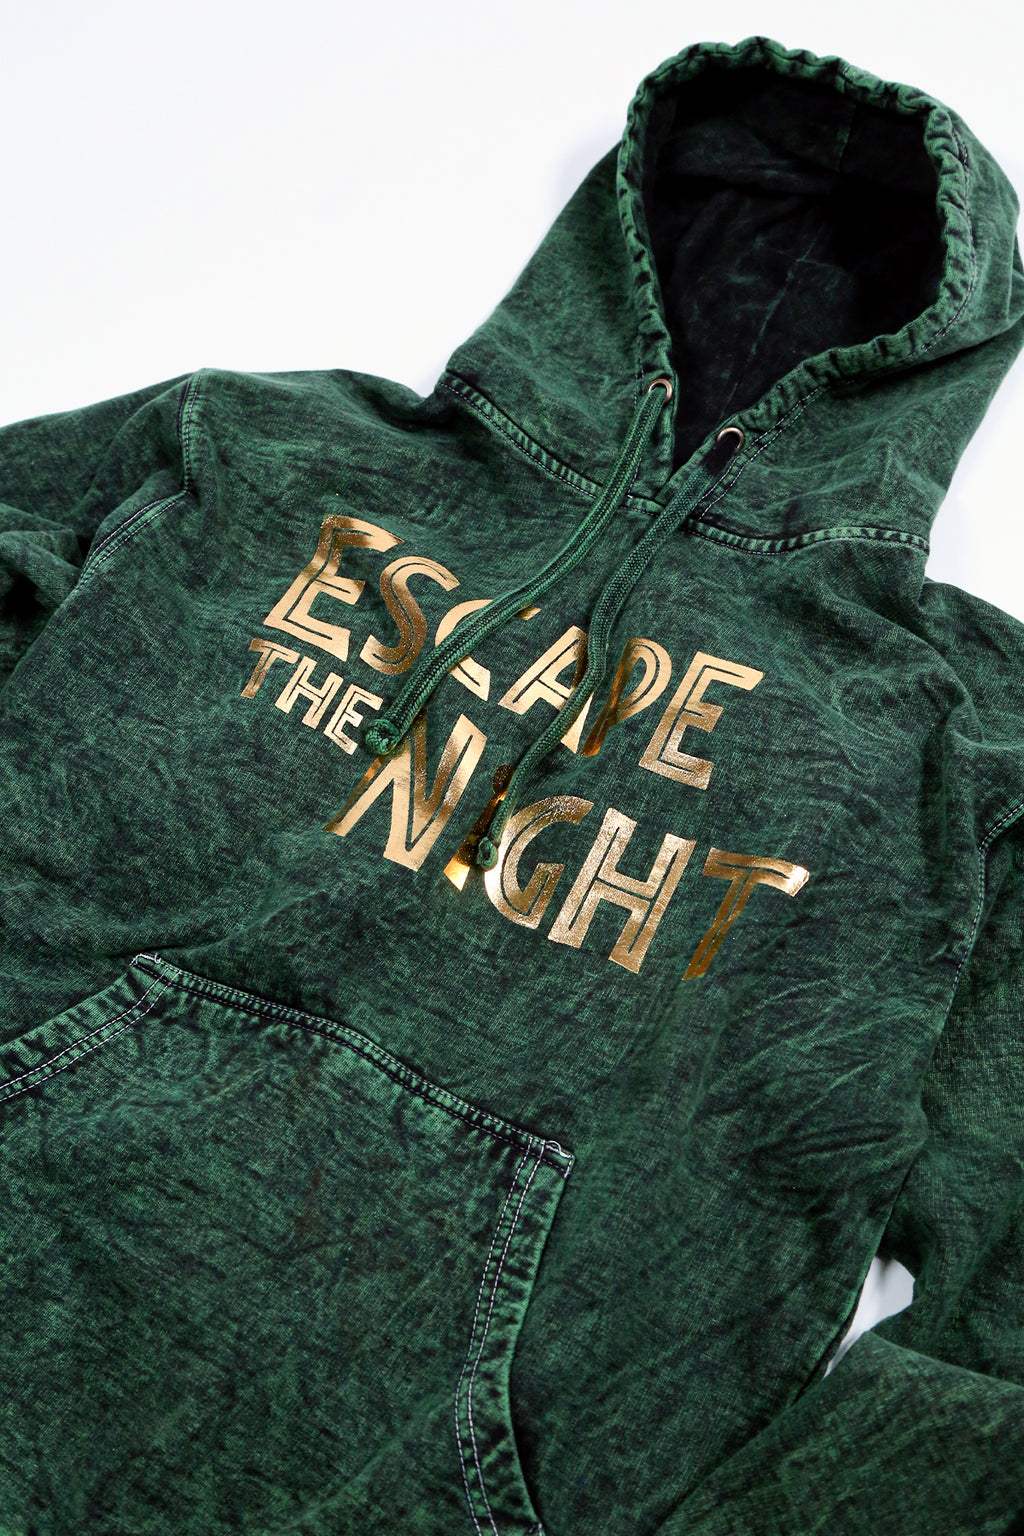 Official Escape The Night Hoodie in Jungle Green (Limited Edition)